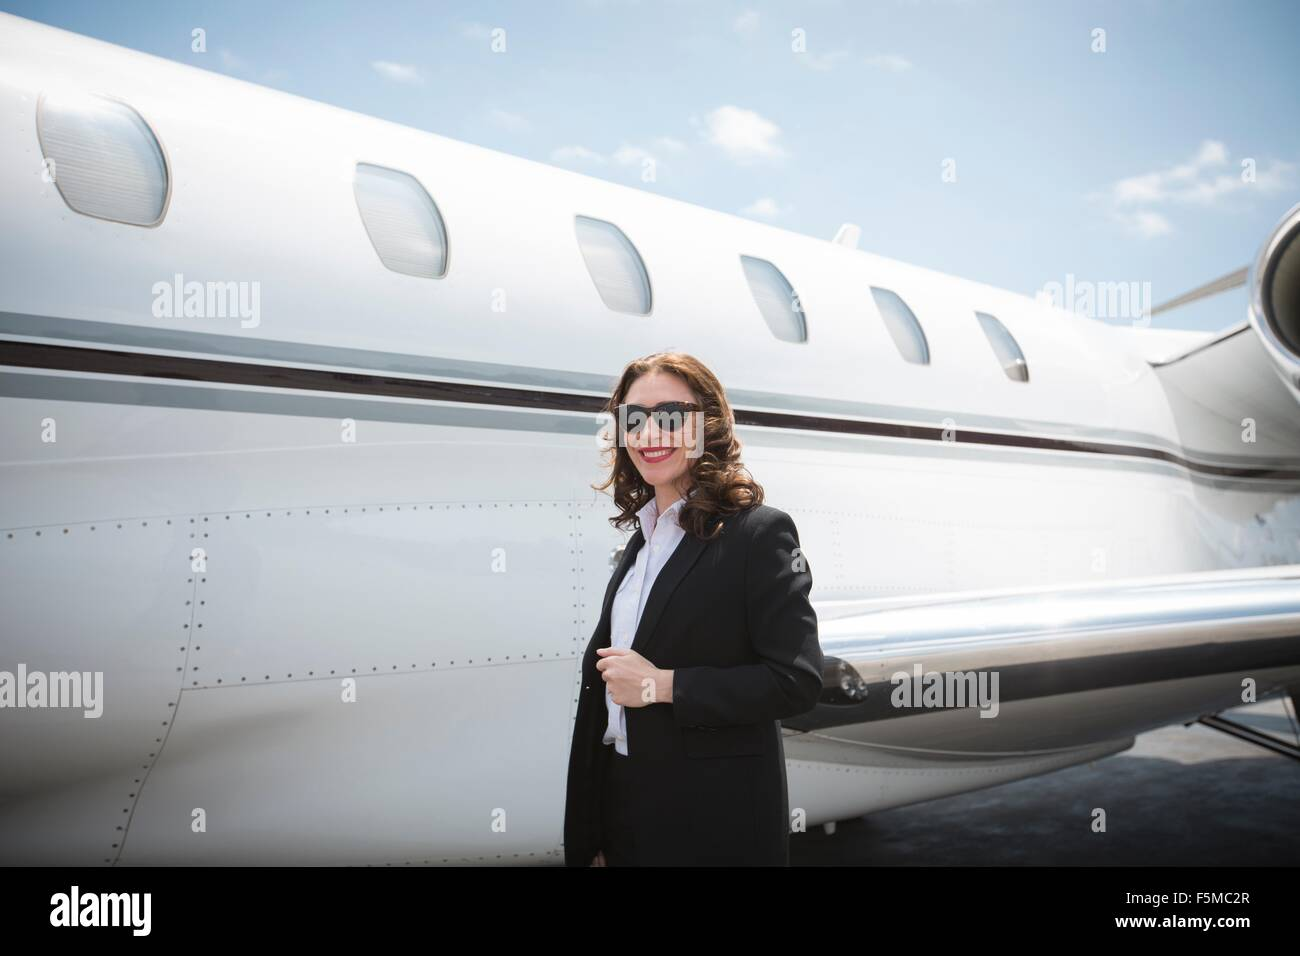 Portrait of female businesswoman and private jet at airport - Stock Image